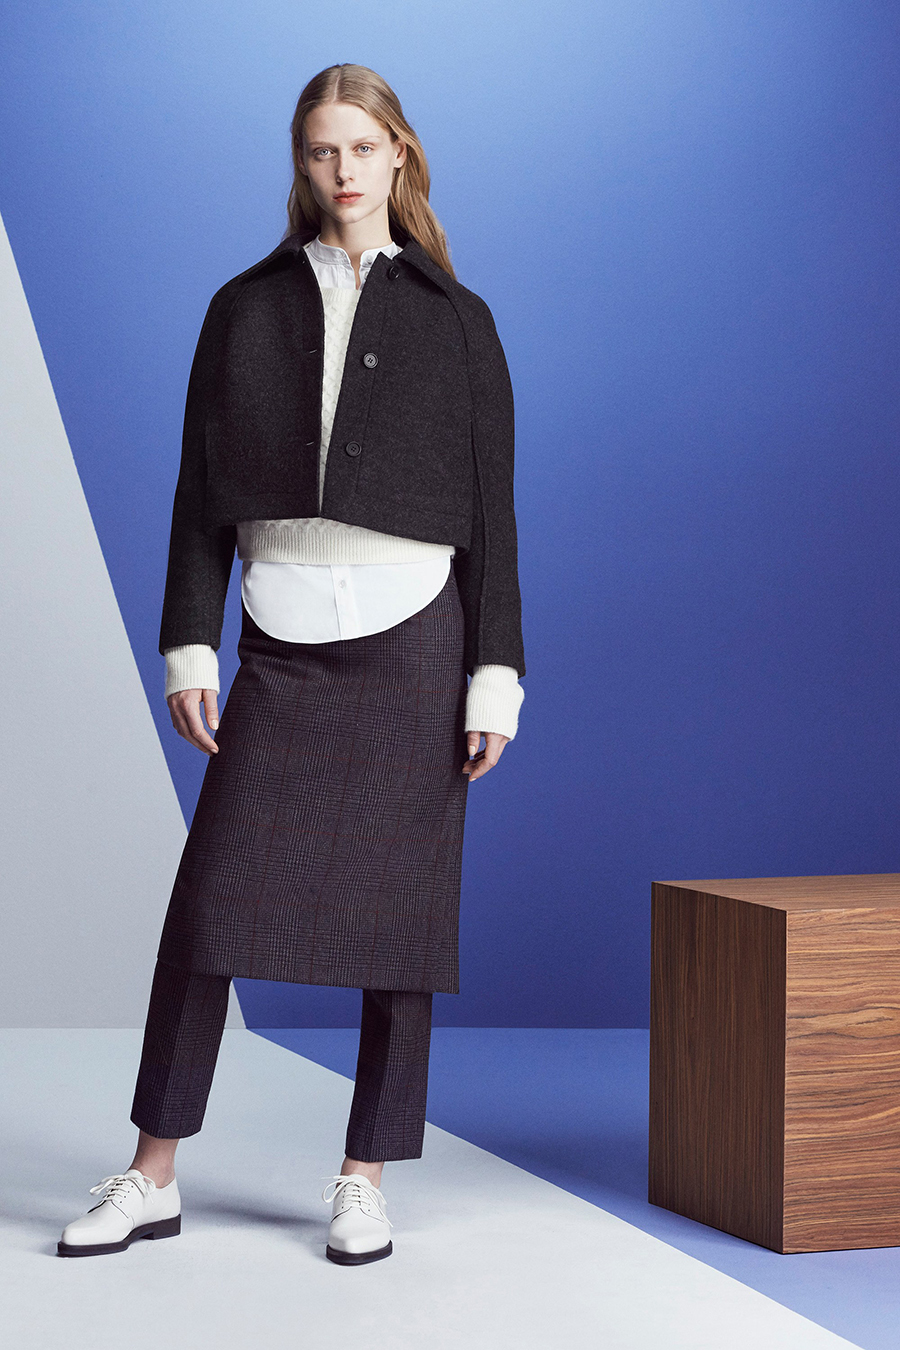 13-jil-sander-navy-fall-2016-ready-to-wear